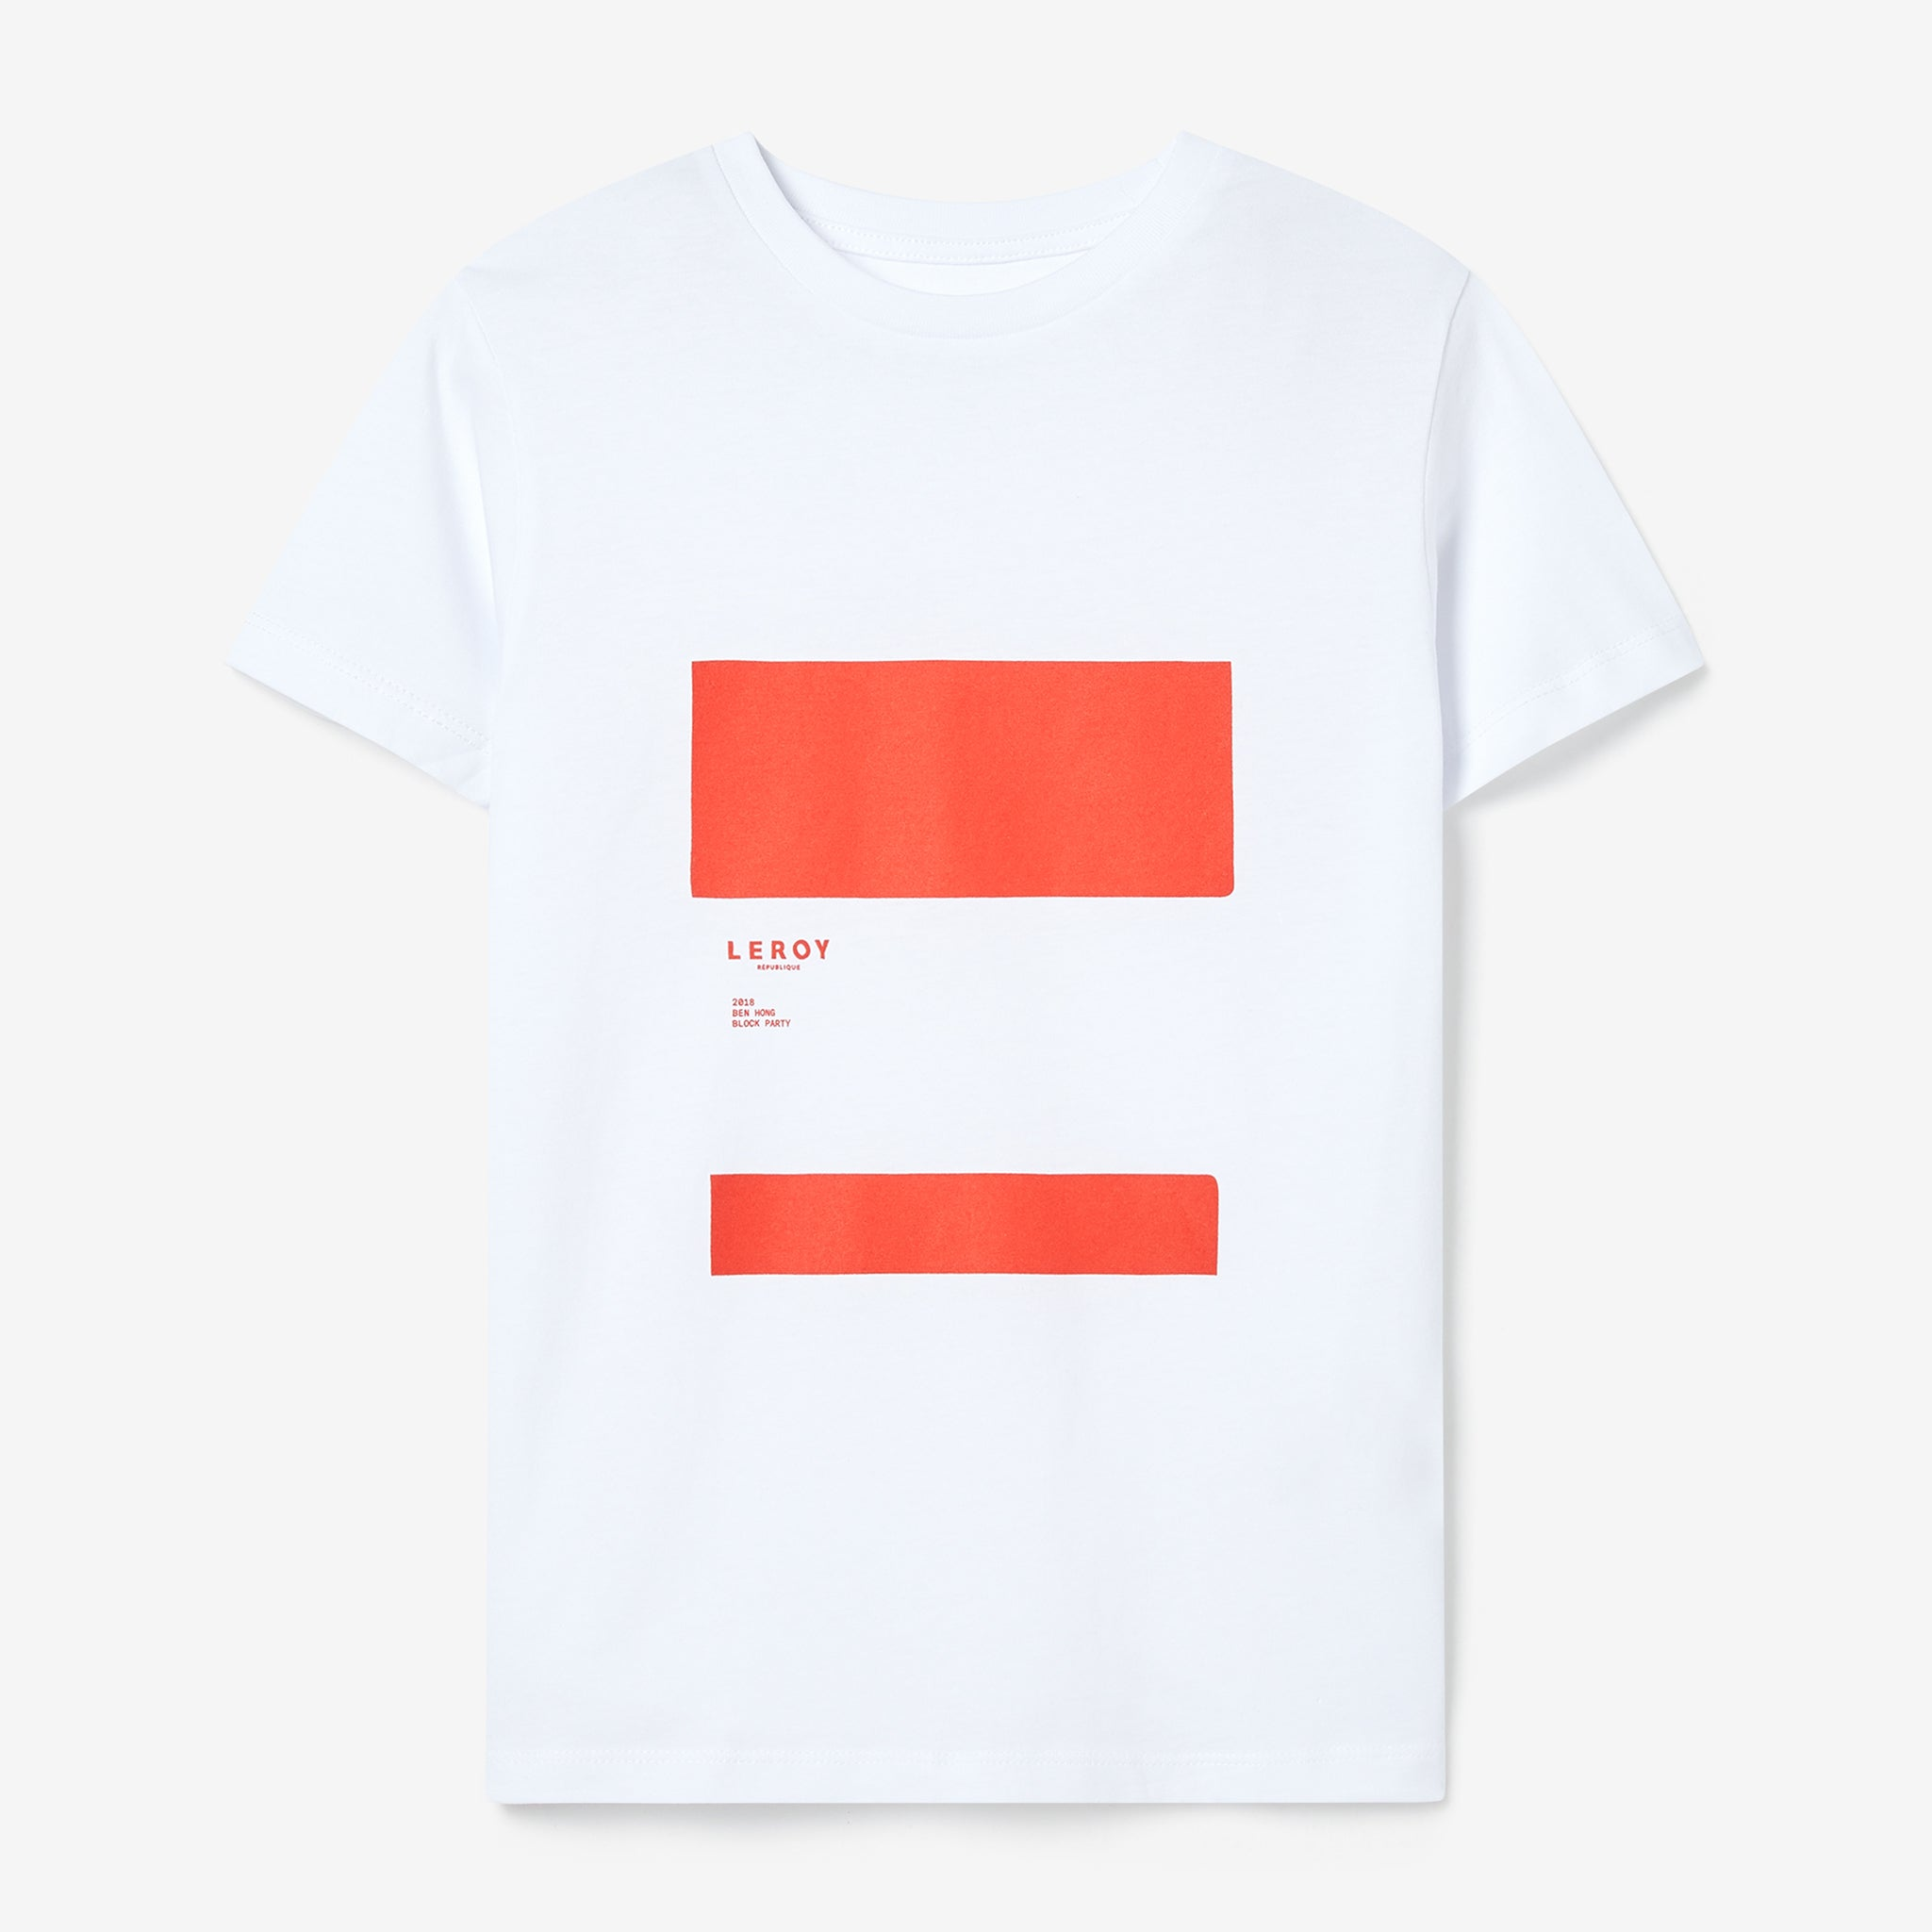 Ledge kid bright red T-shirt